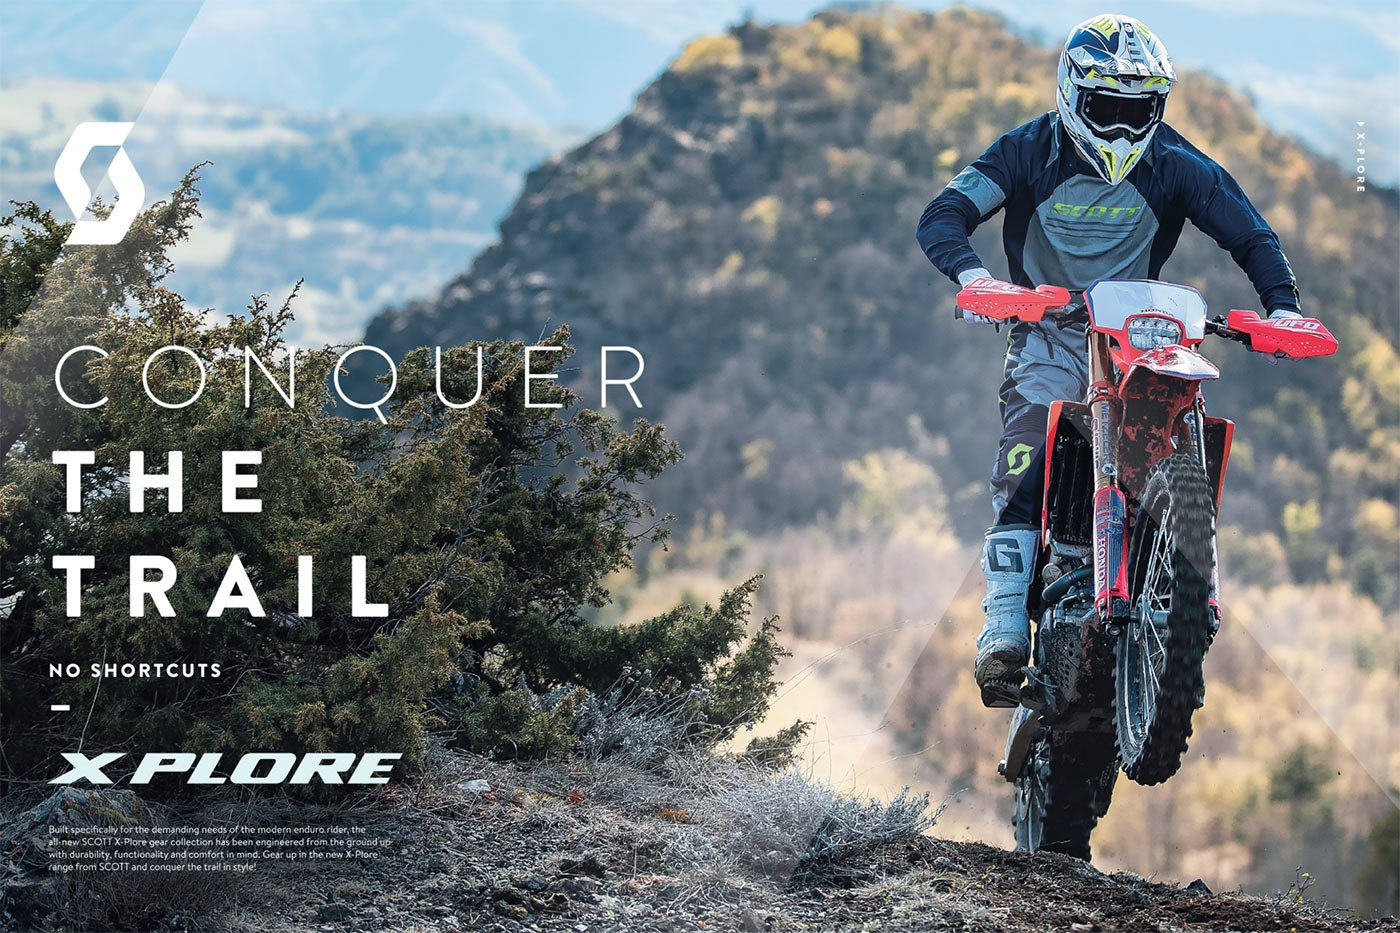 SCOTT Sports has launched its brand new enduro-focused X-Plore collection